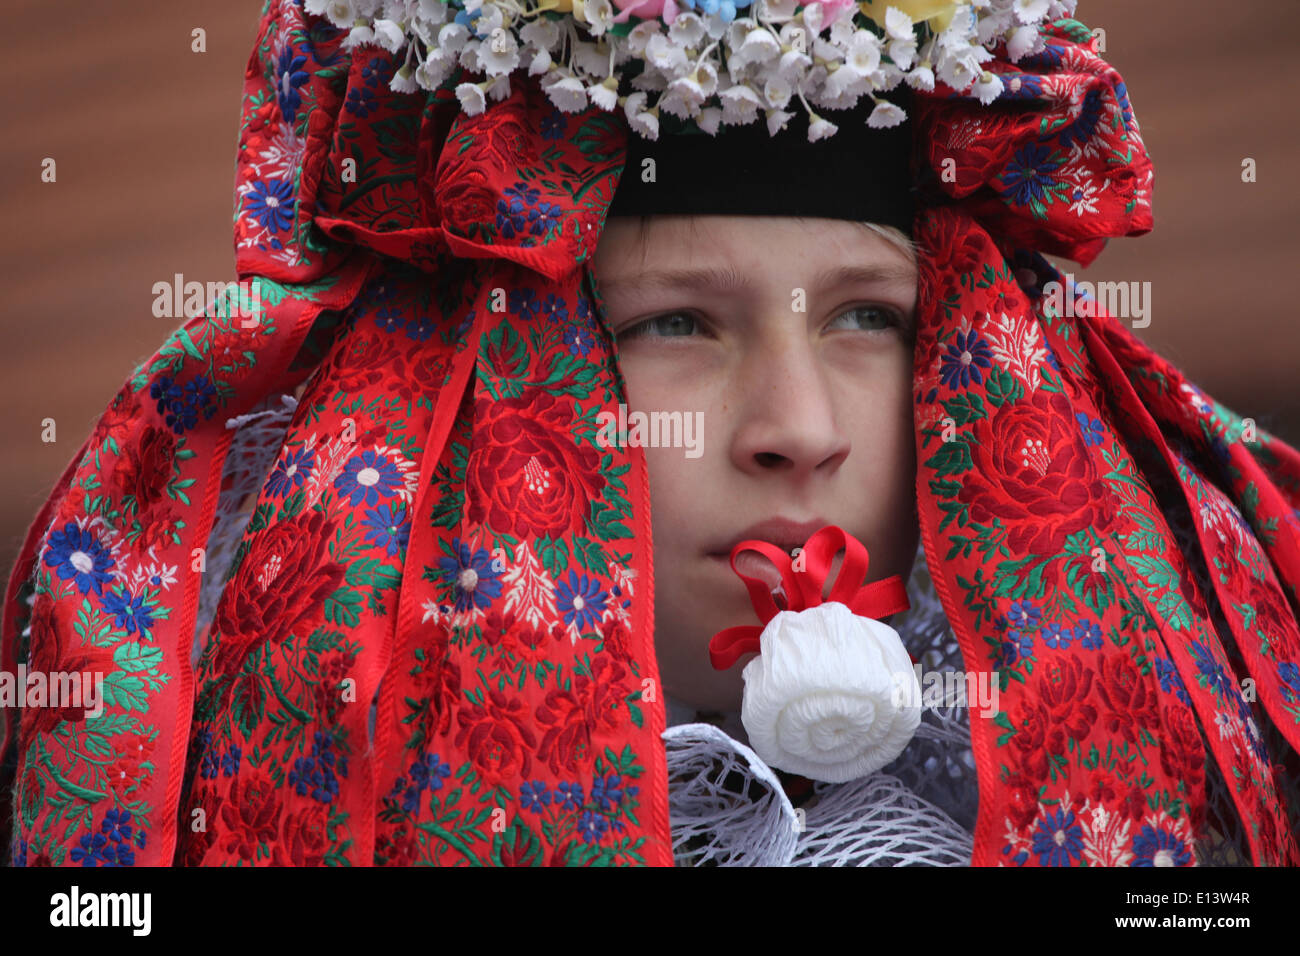 The Ride of the Kings. Traditional folklore festival in Vlcnov, Czech Republic. The boy king white rose in his mouth. Stock Photo